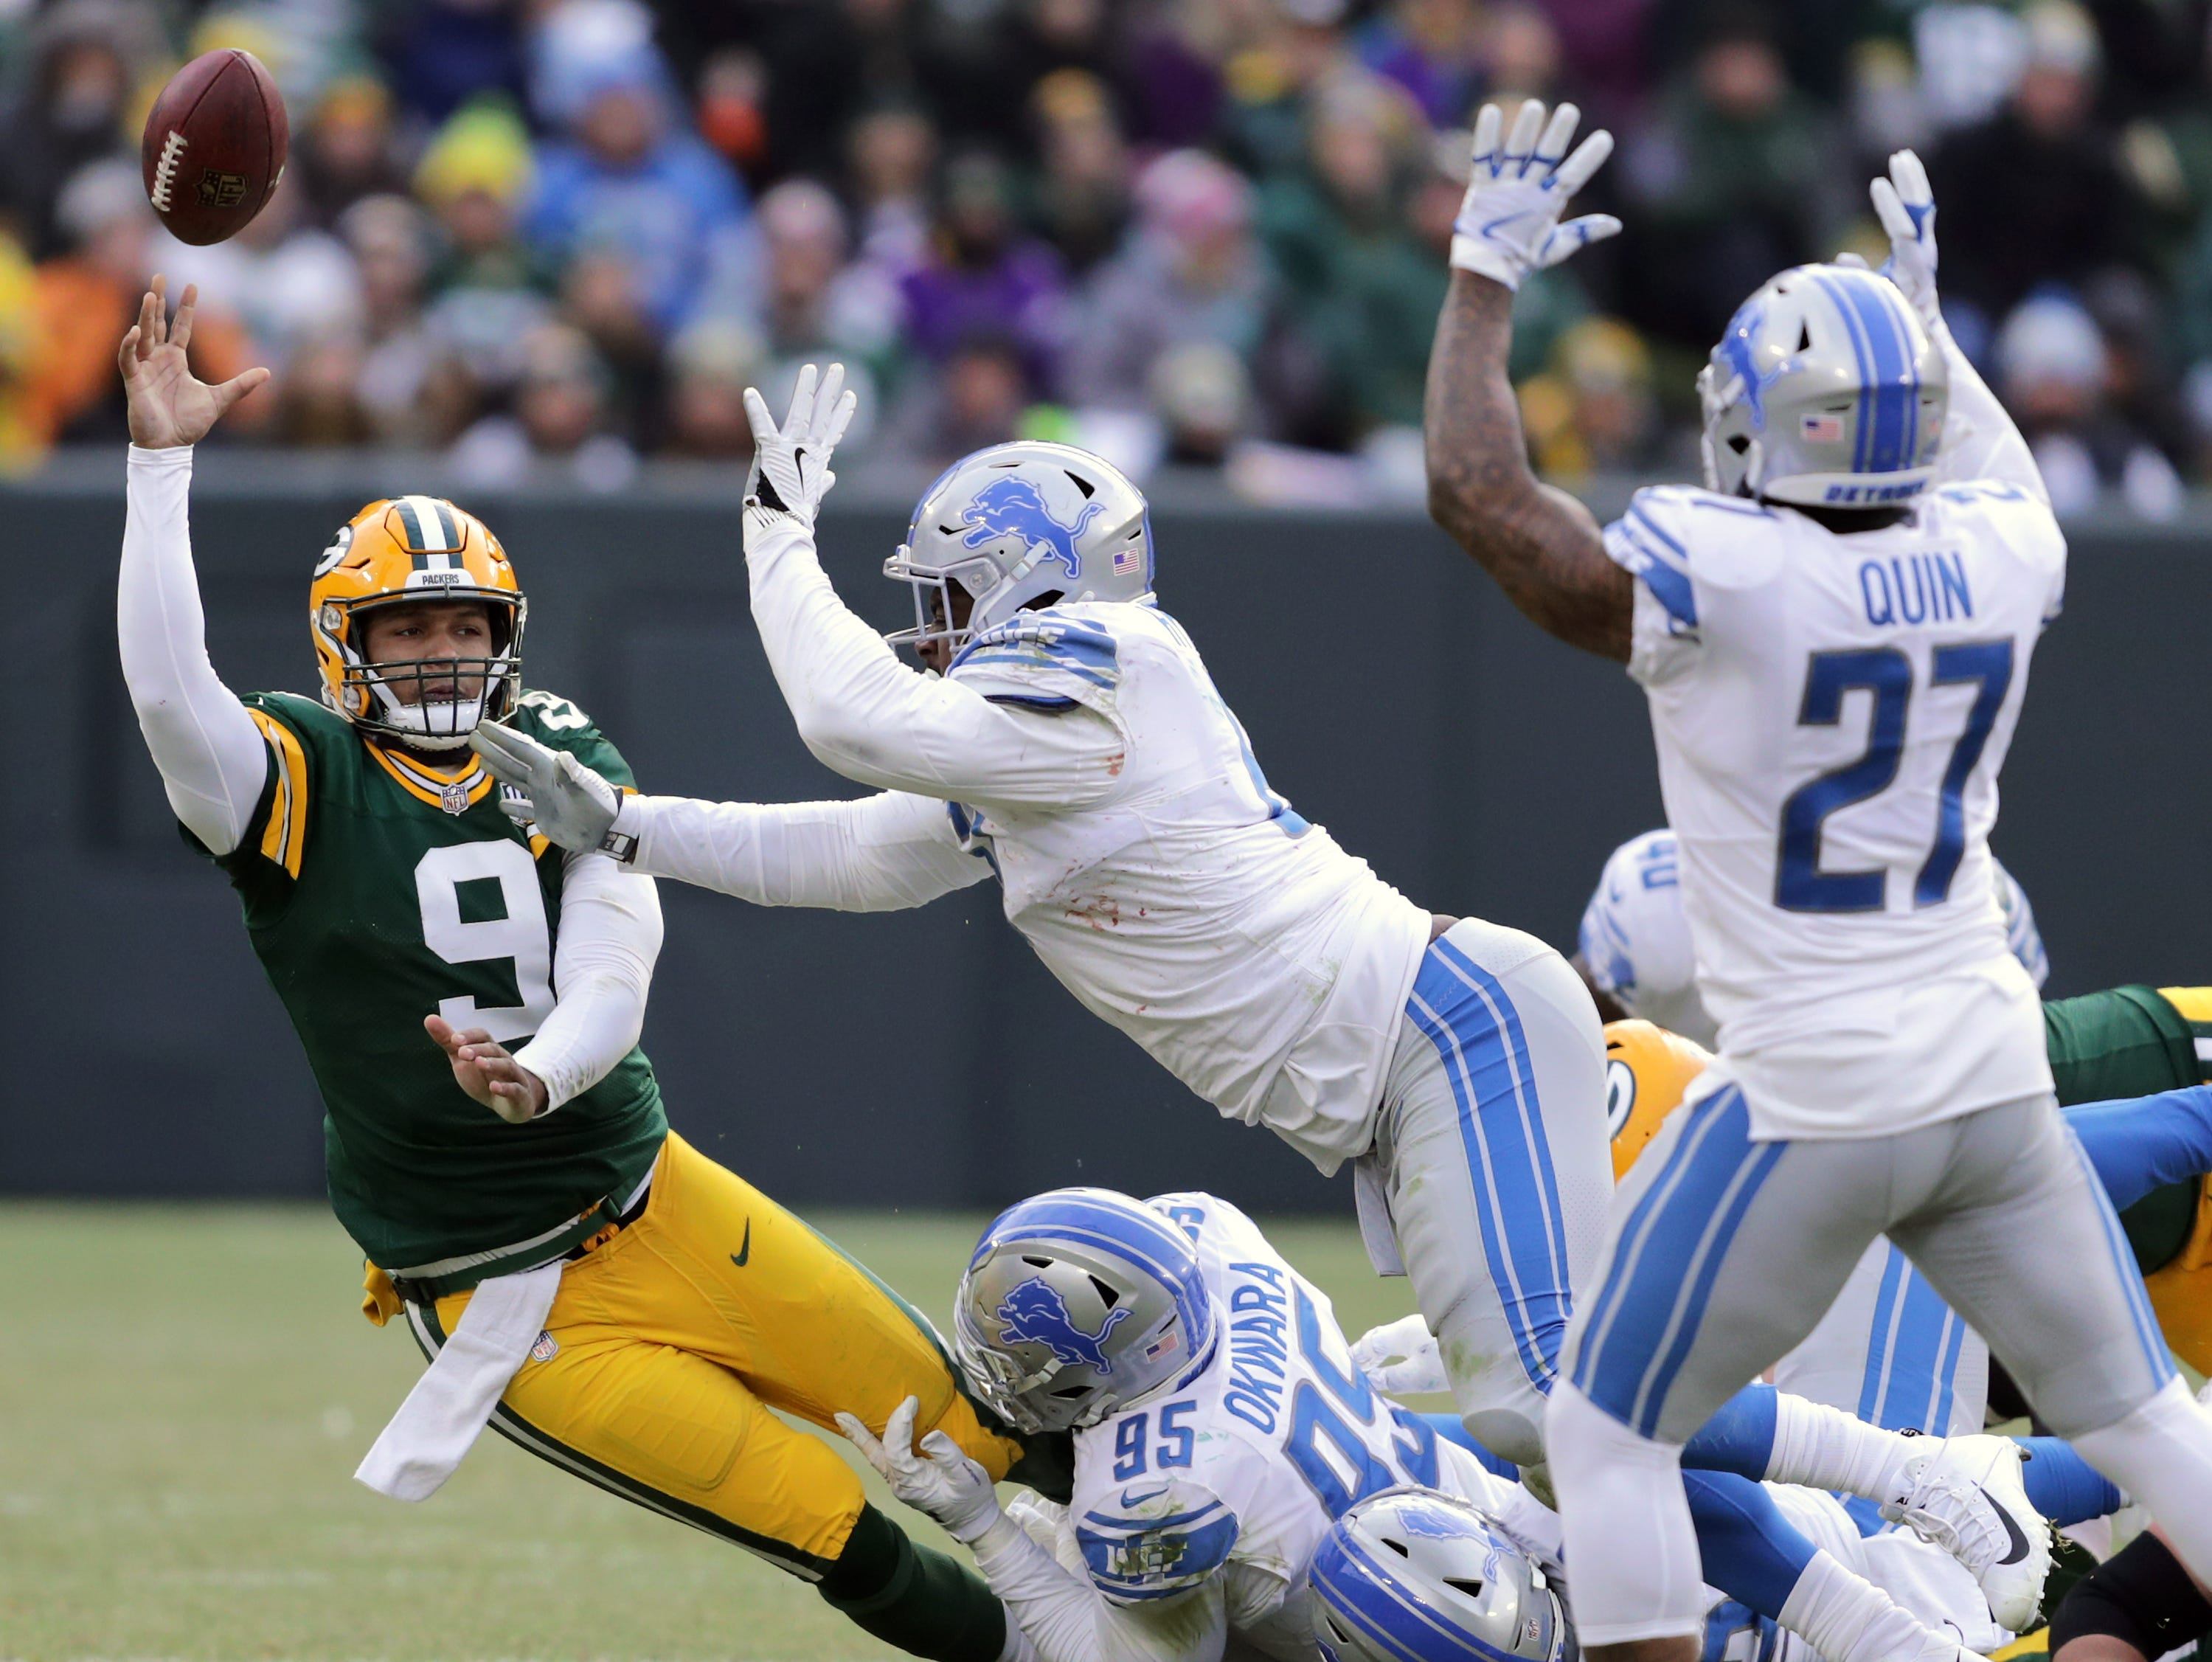 Green Bay Packers quarterback DeShone Kizer throws a fourth quarter interception against the Detroit Lions during their football game on Sunday, December 30, 2018, at Lambeau Field in Green Bay, Wis. Detroit defeated Green Bay 31 to 0. Wm. Glasheen/USA TODAY NETWORK-Wisconsin.